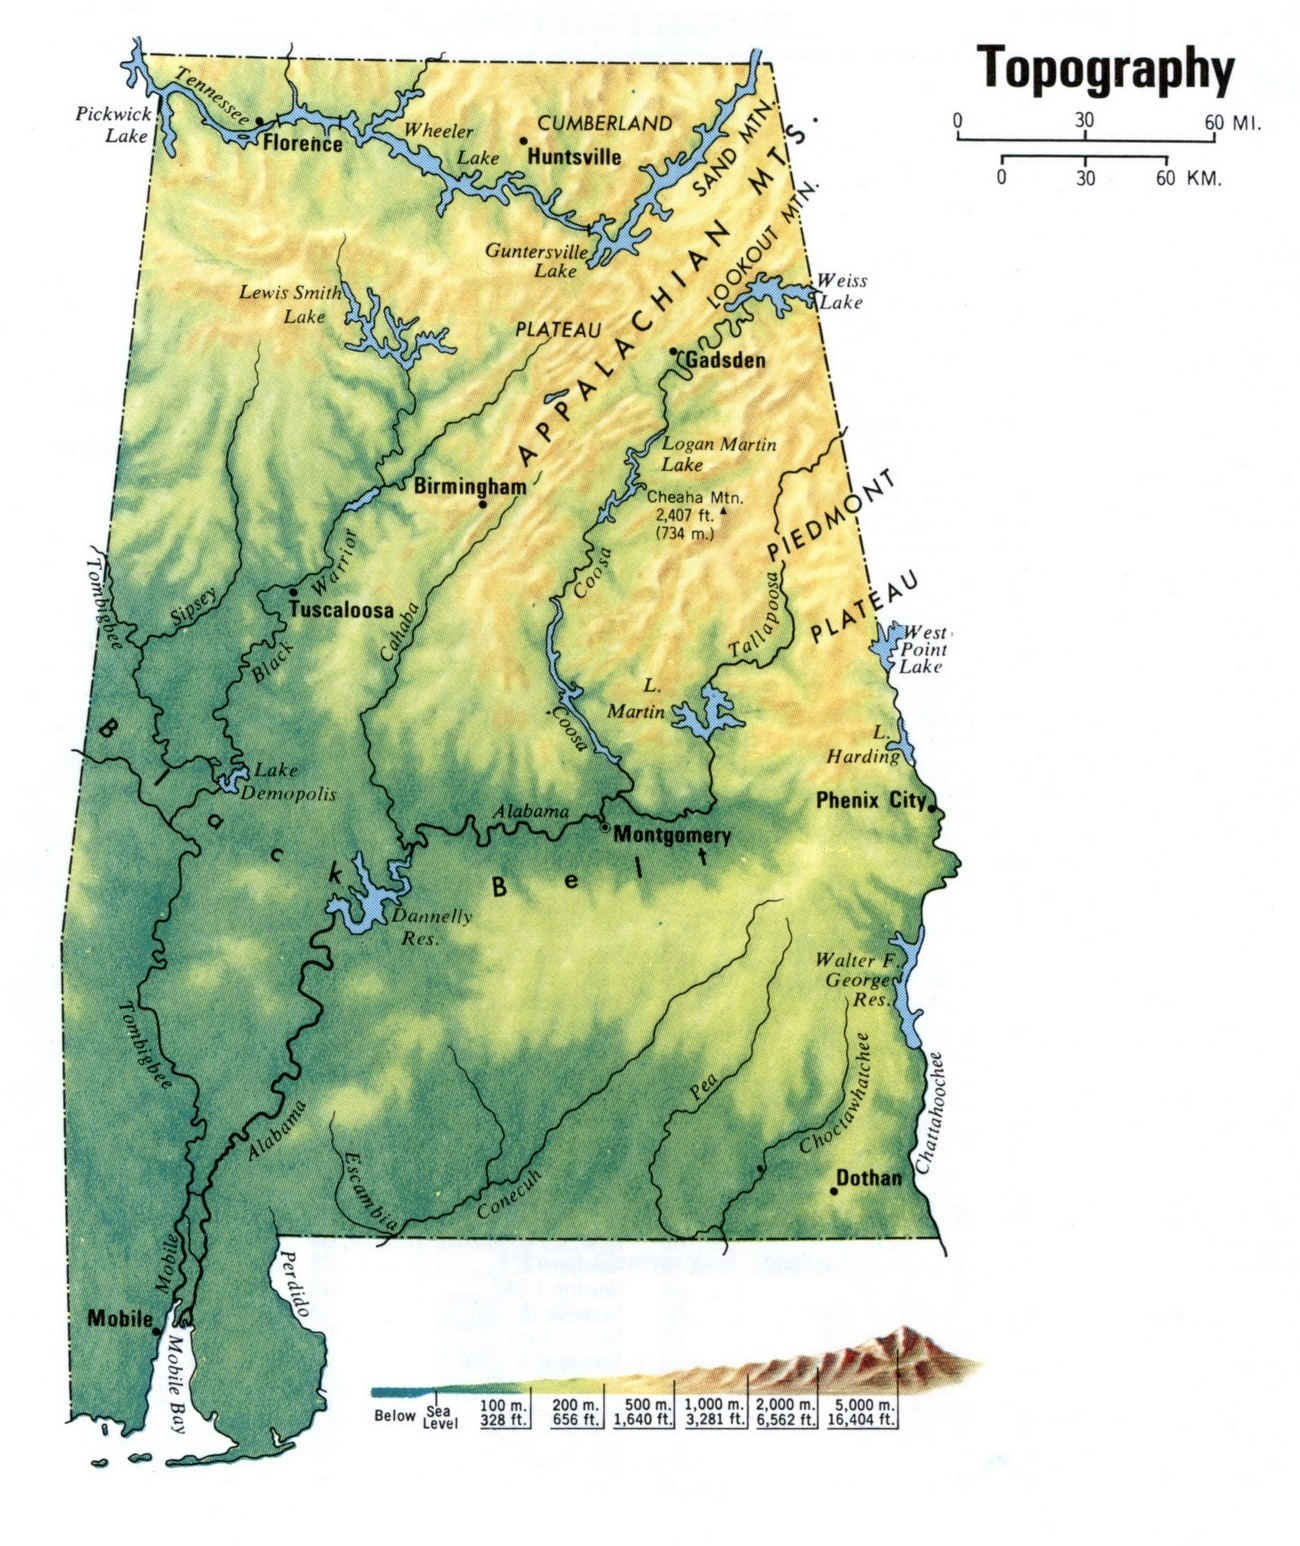 Alabama Topography Map | Large and Attractive Topographic Map of Alabama